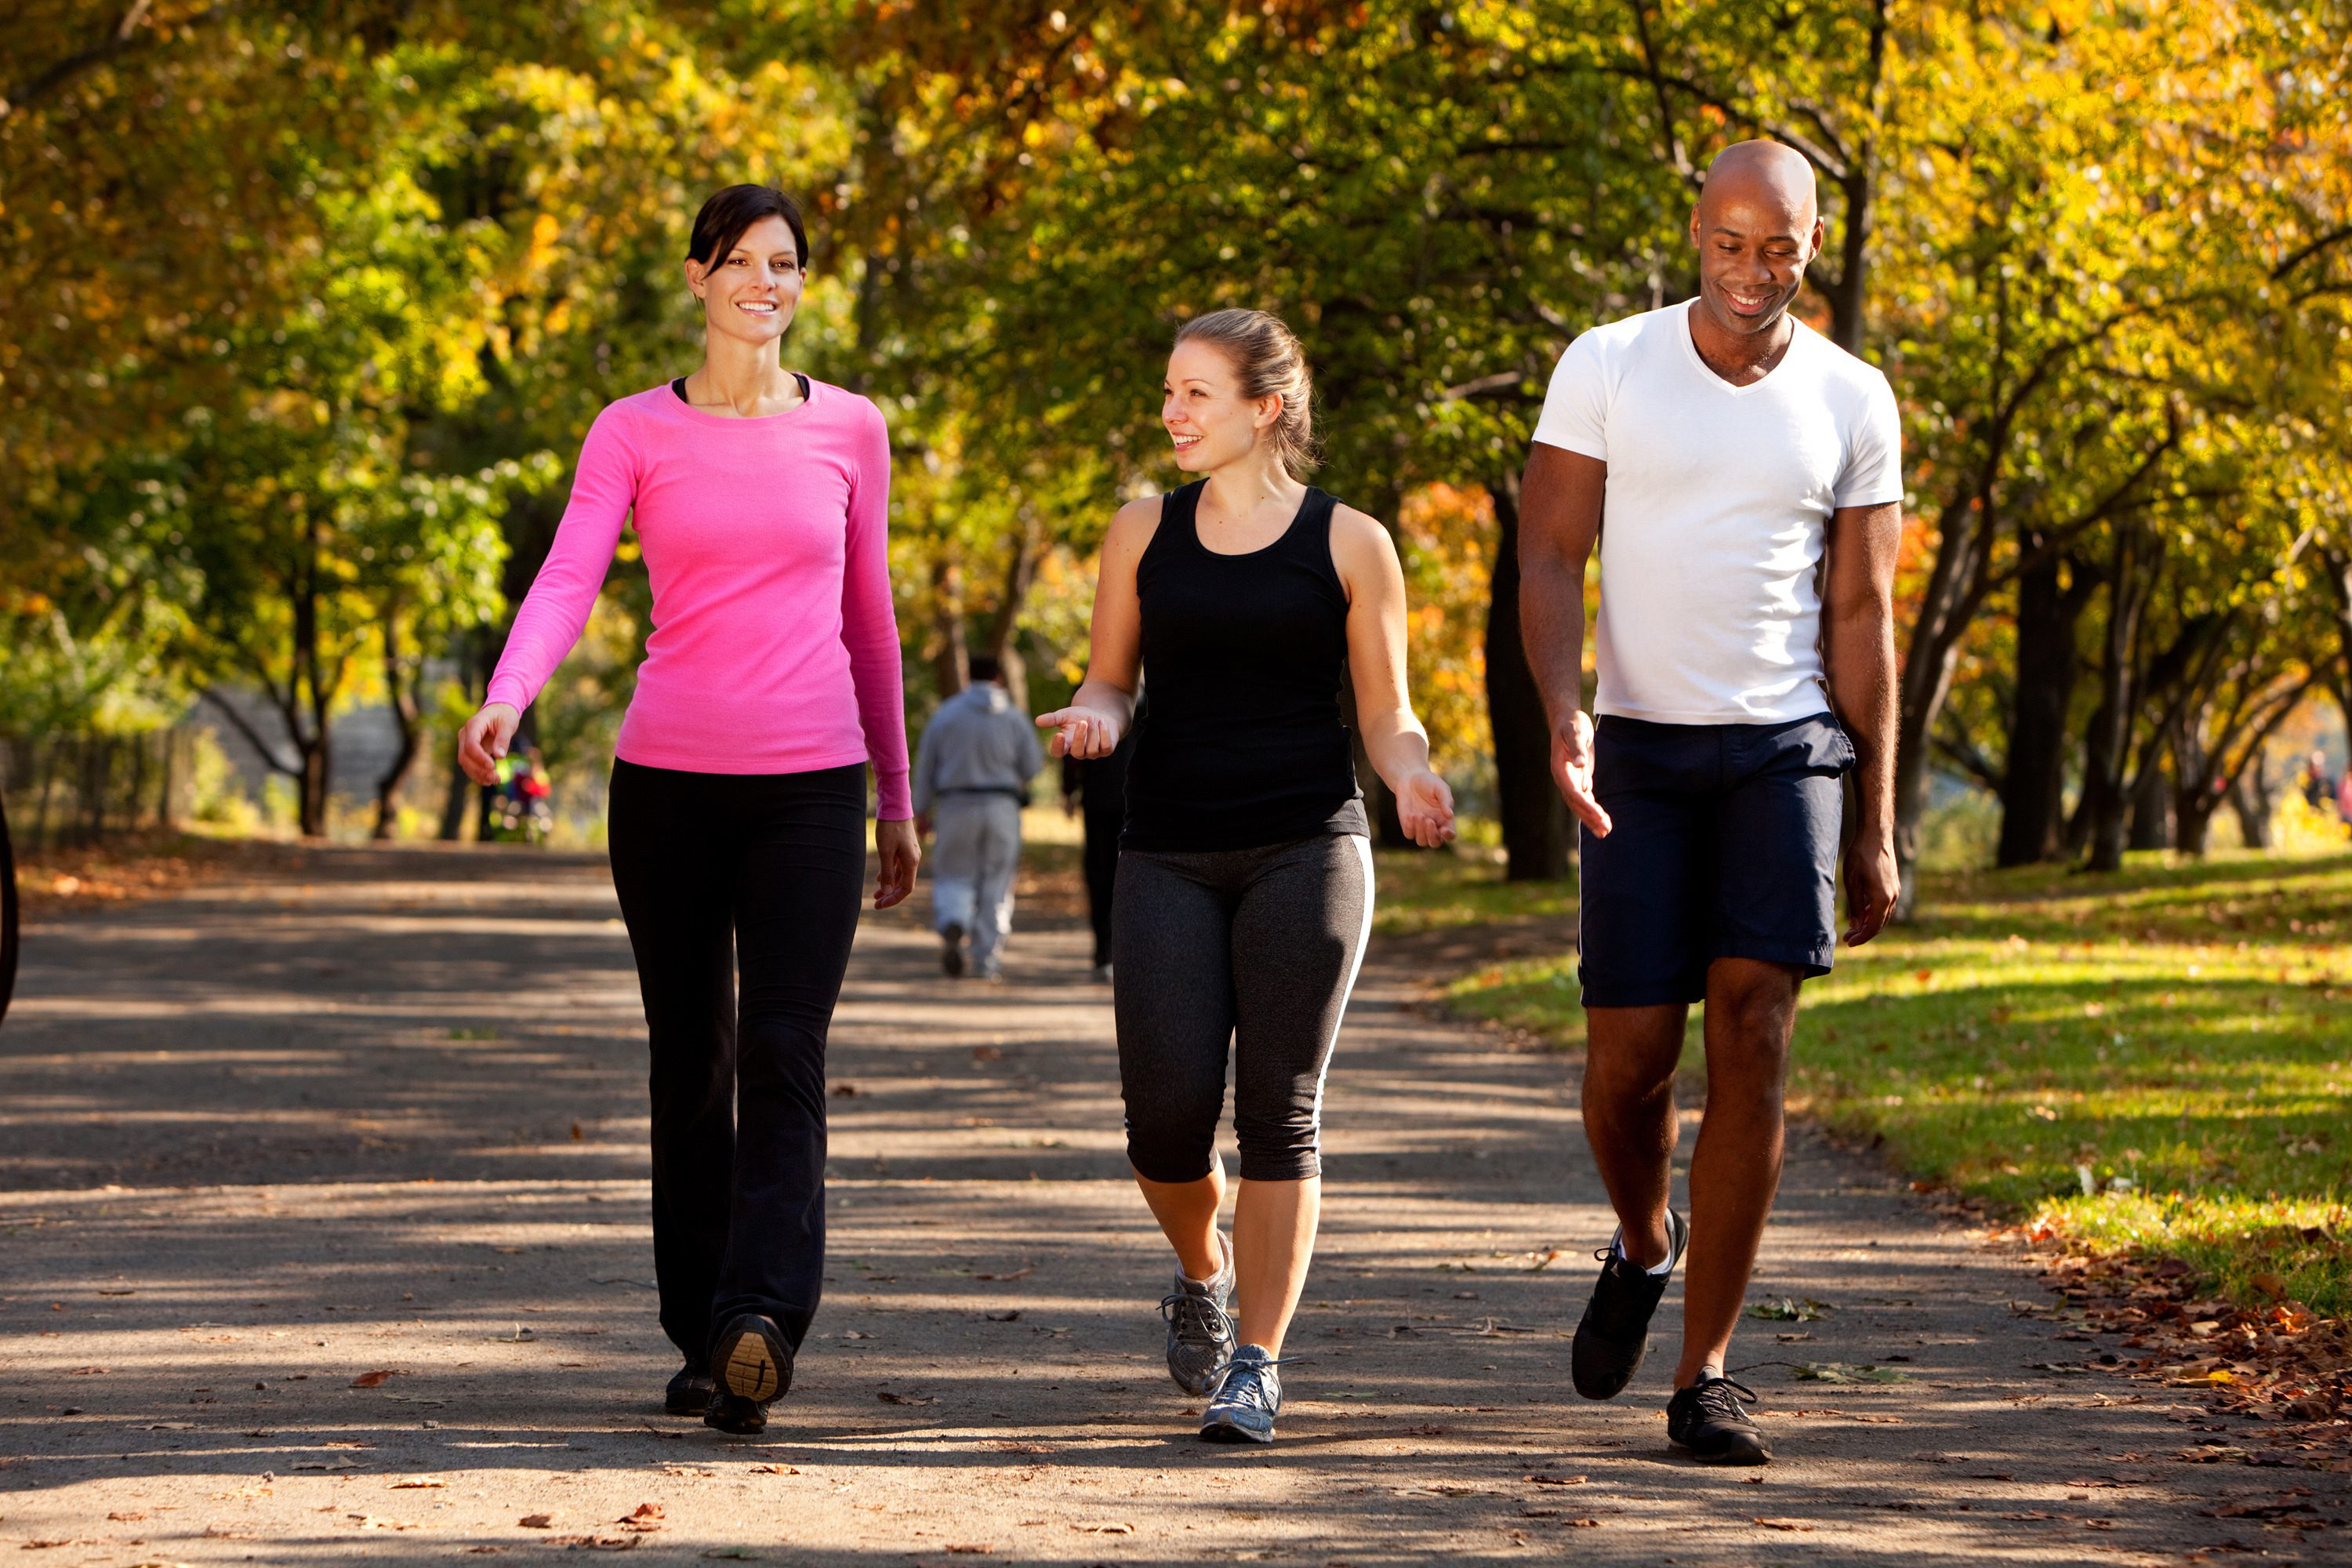 Treatment for Balance and Gait Disorders | El Paso, TX Chiropractor